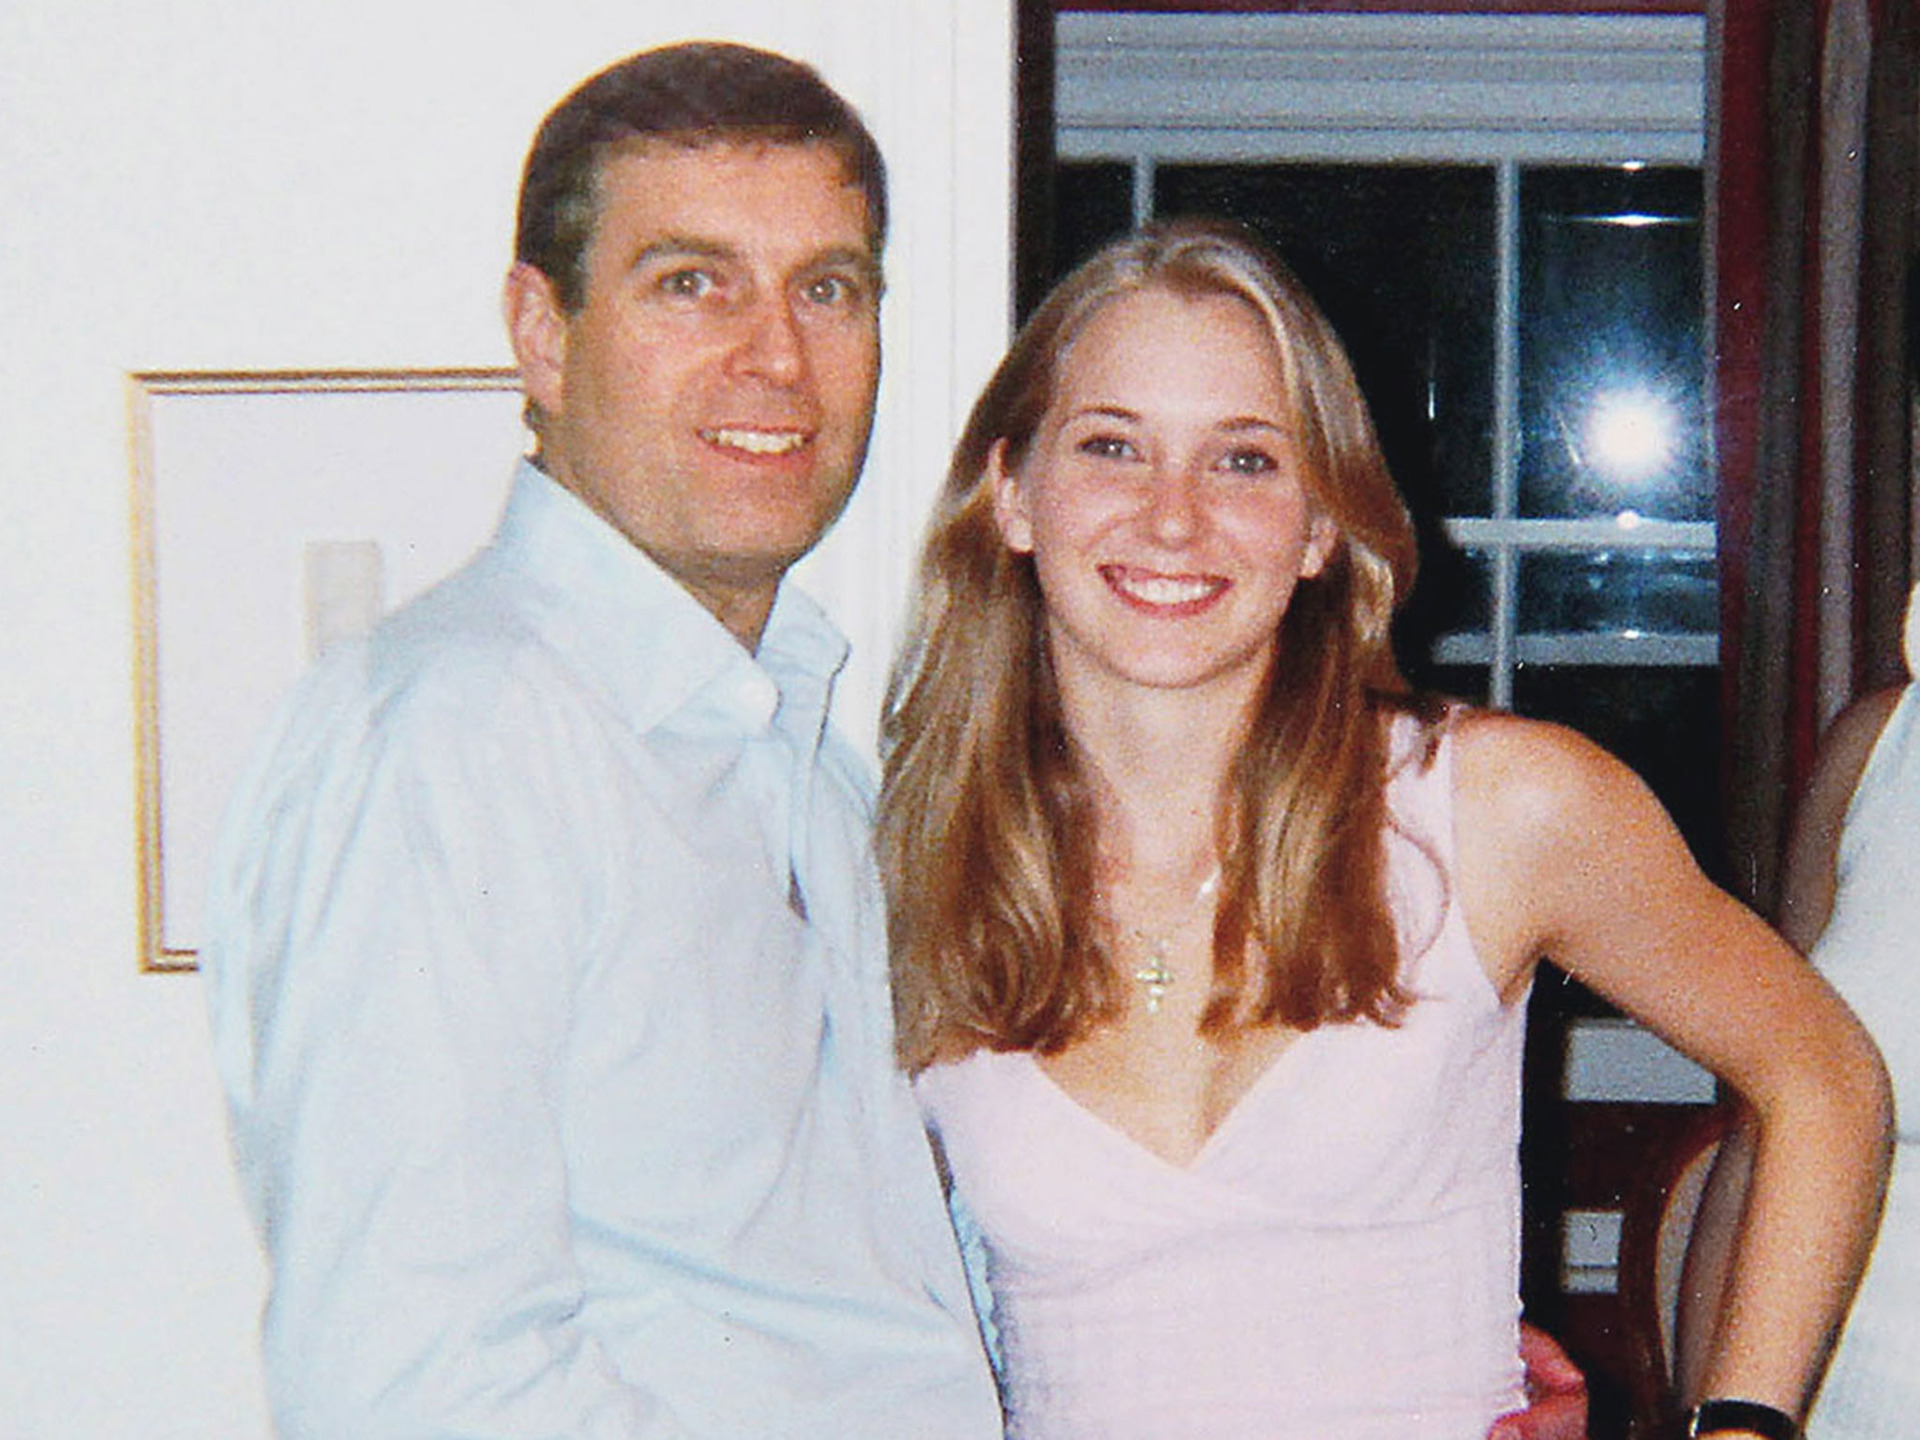 'You saw me': Jeffrey Epstein, Prince Andrew's 'sex slave's' fury